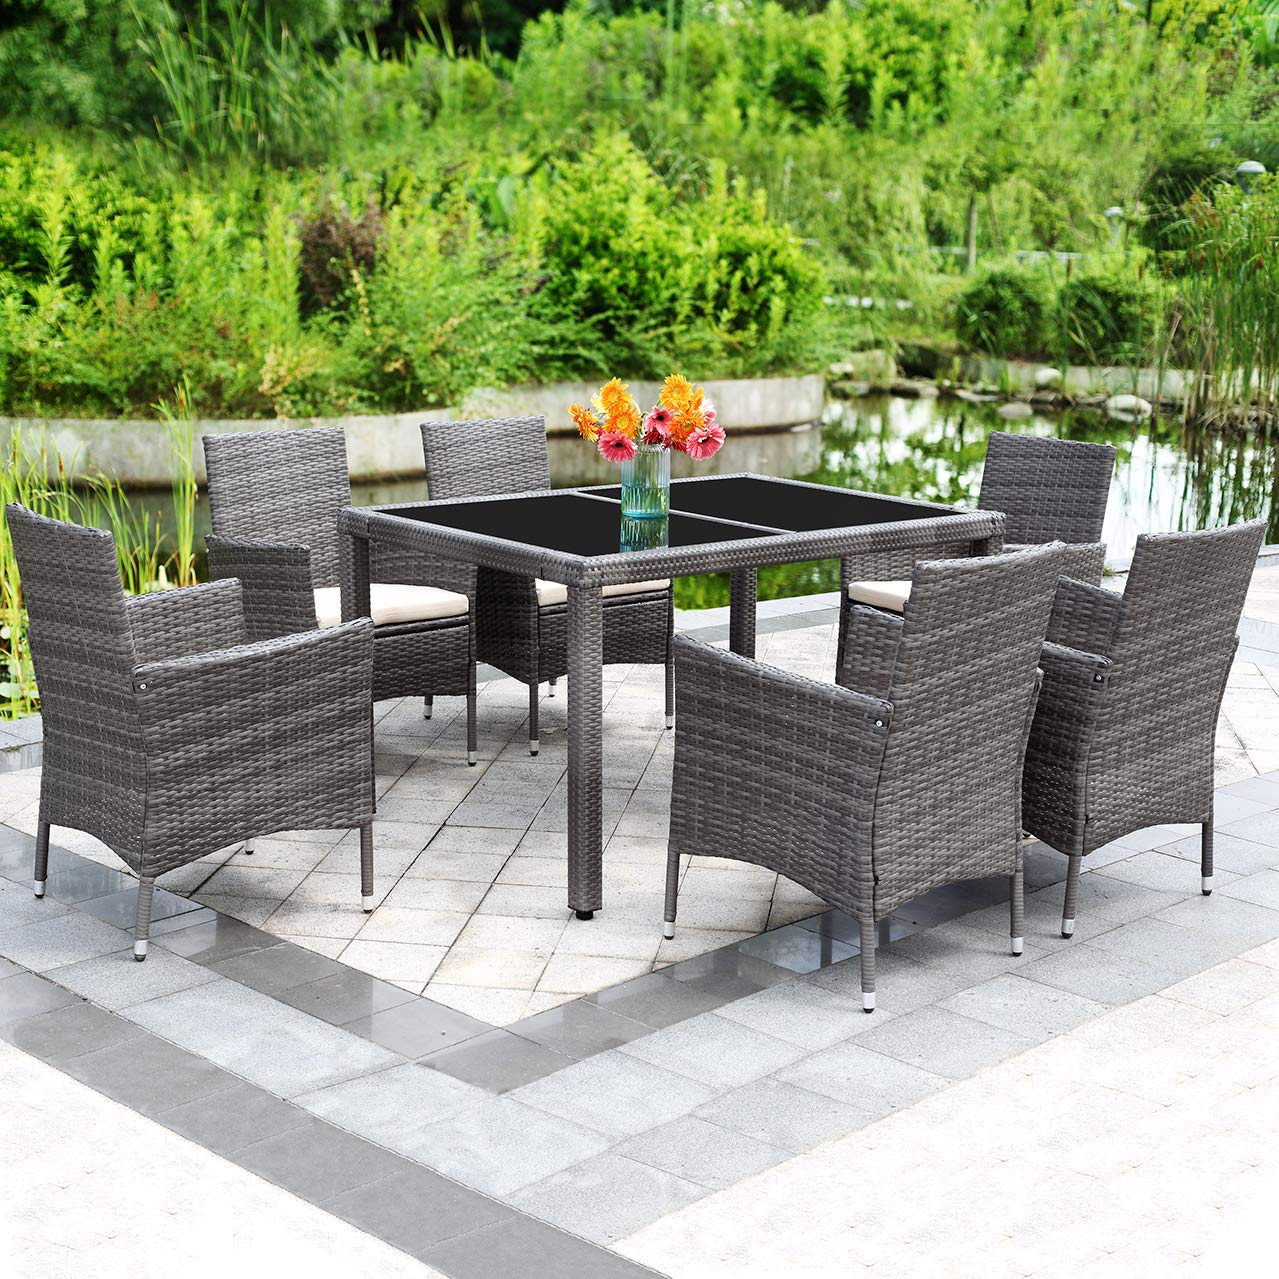 Amazon com solaste 7pcs outdoor furniture all weather patio porch dining table and chairs grey wicker with washable cushions garden outdoor